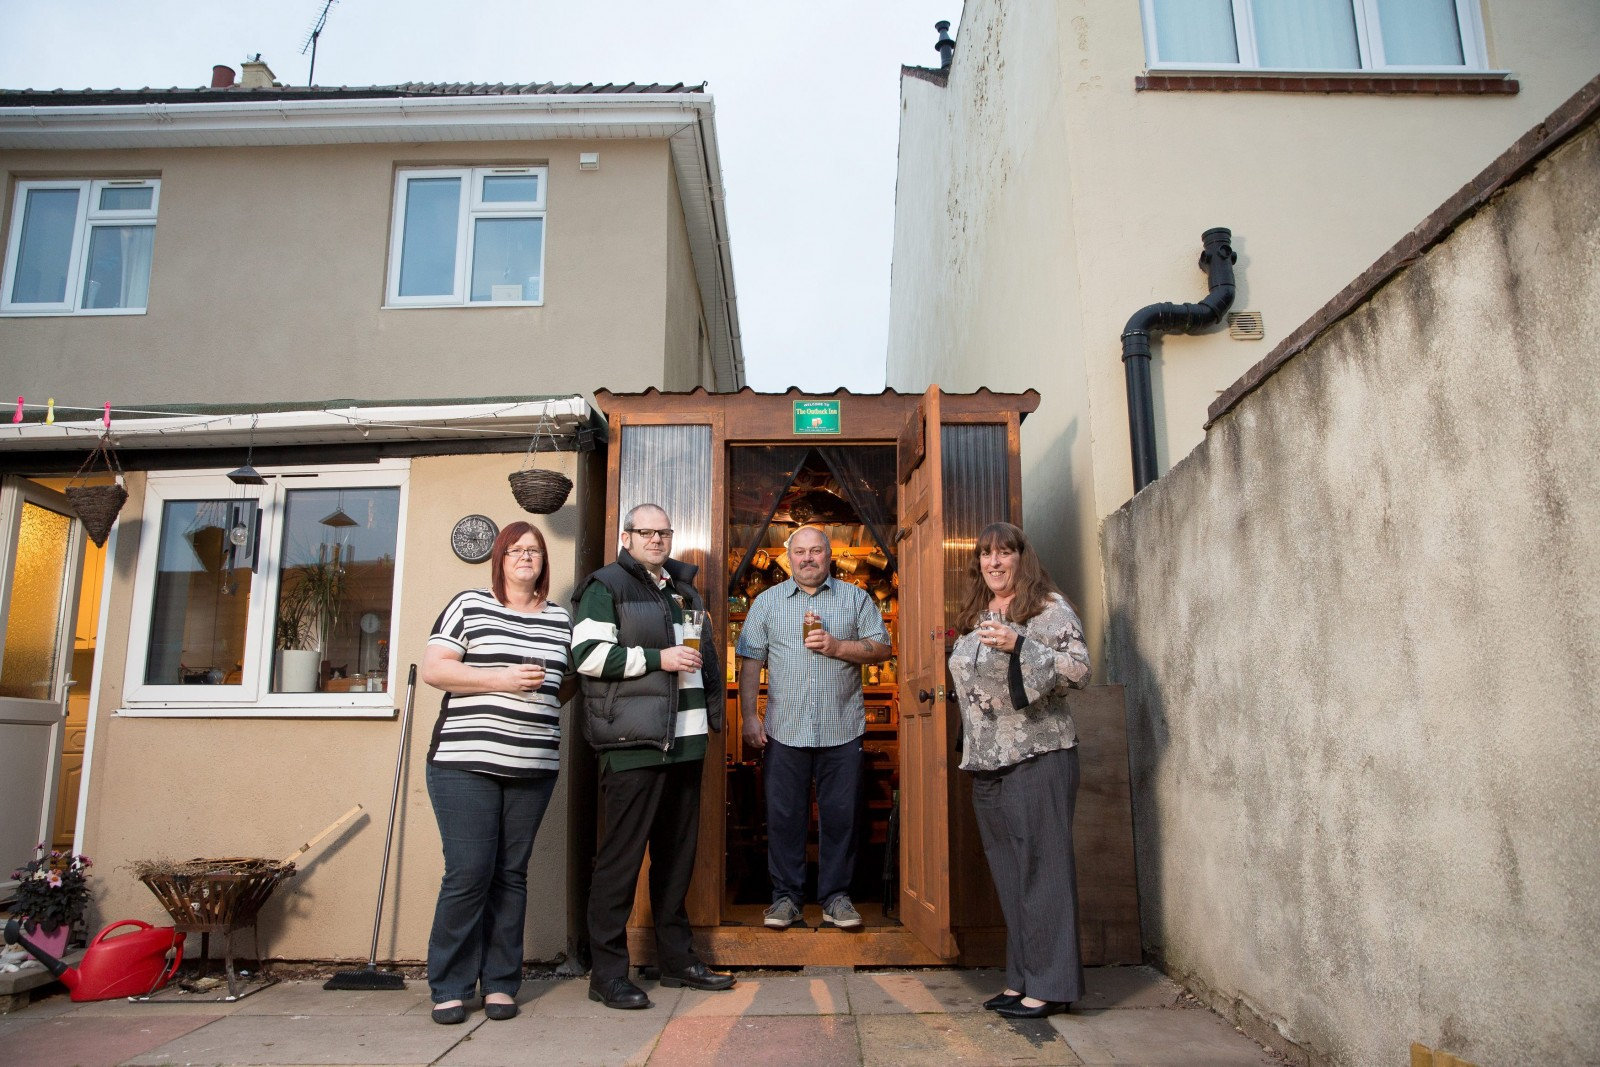 Neighbours build a tiny PUB between their houses!